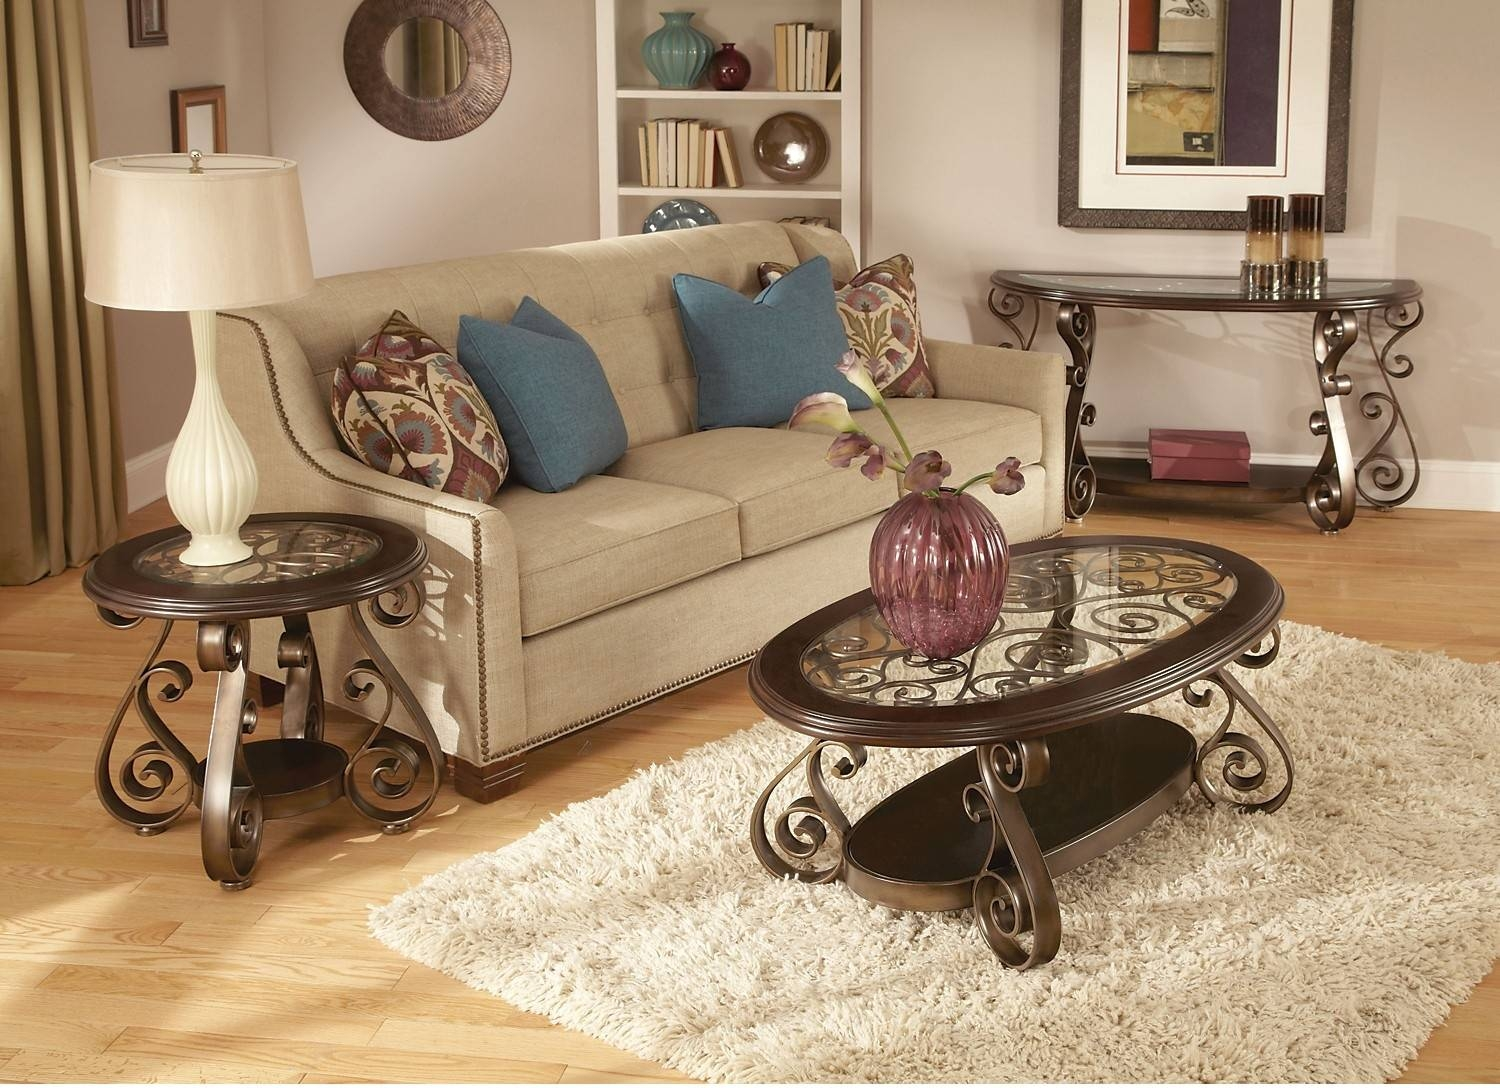 Bombay 3-Piece Coffee, End And Sofa Table Package | United pertaining to Bombay Coffee Tables (Image 4 of 30)